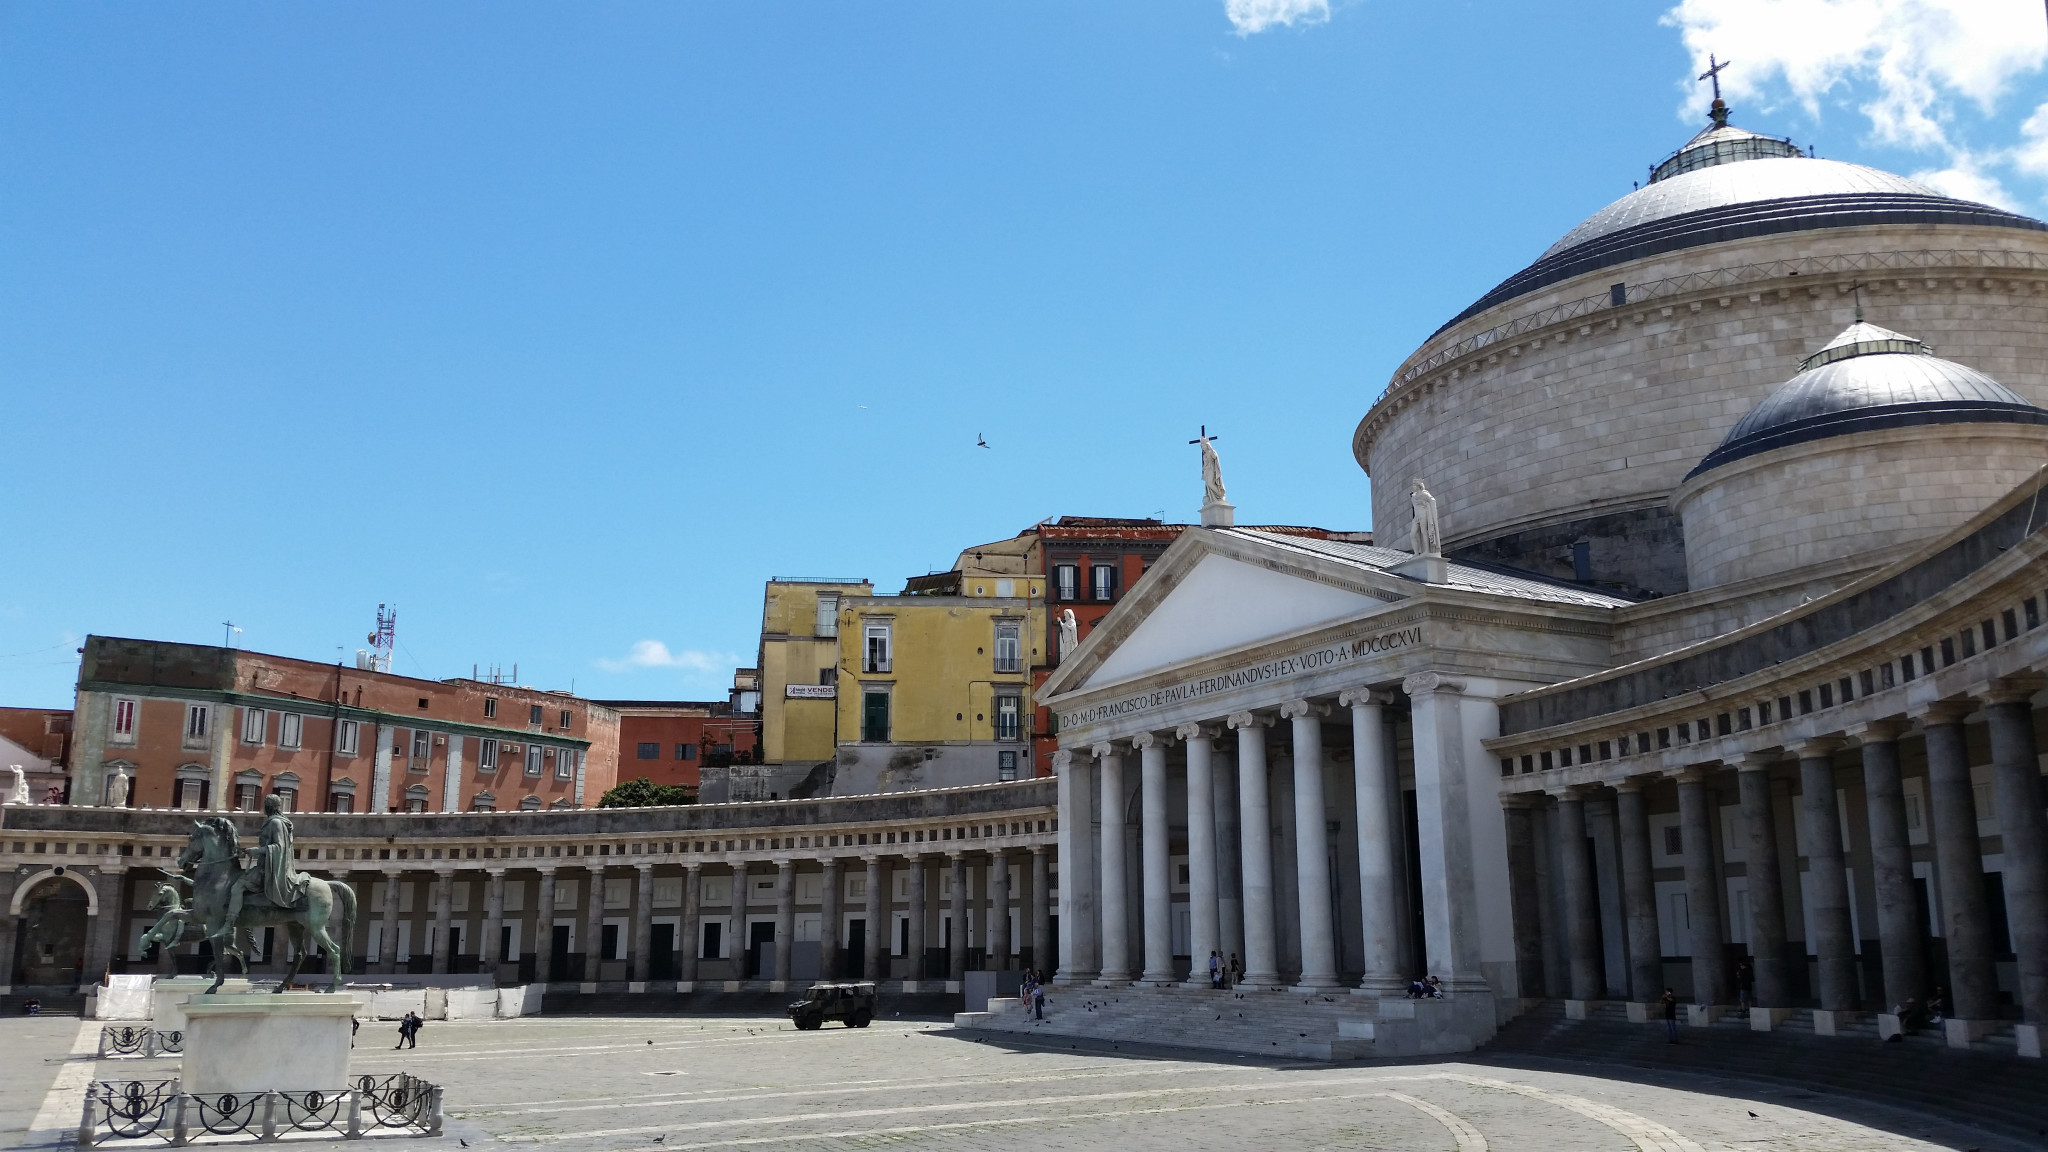 Piazza del Plebiscito in Naples has been confirmed as the venue for the 2019 Summer Universiade Closing Ceremony ©Getty Images